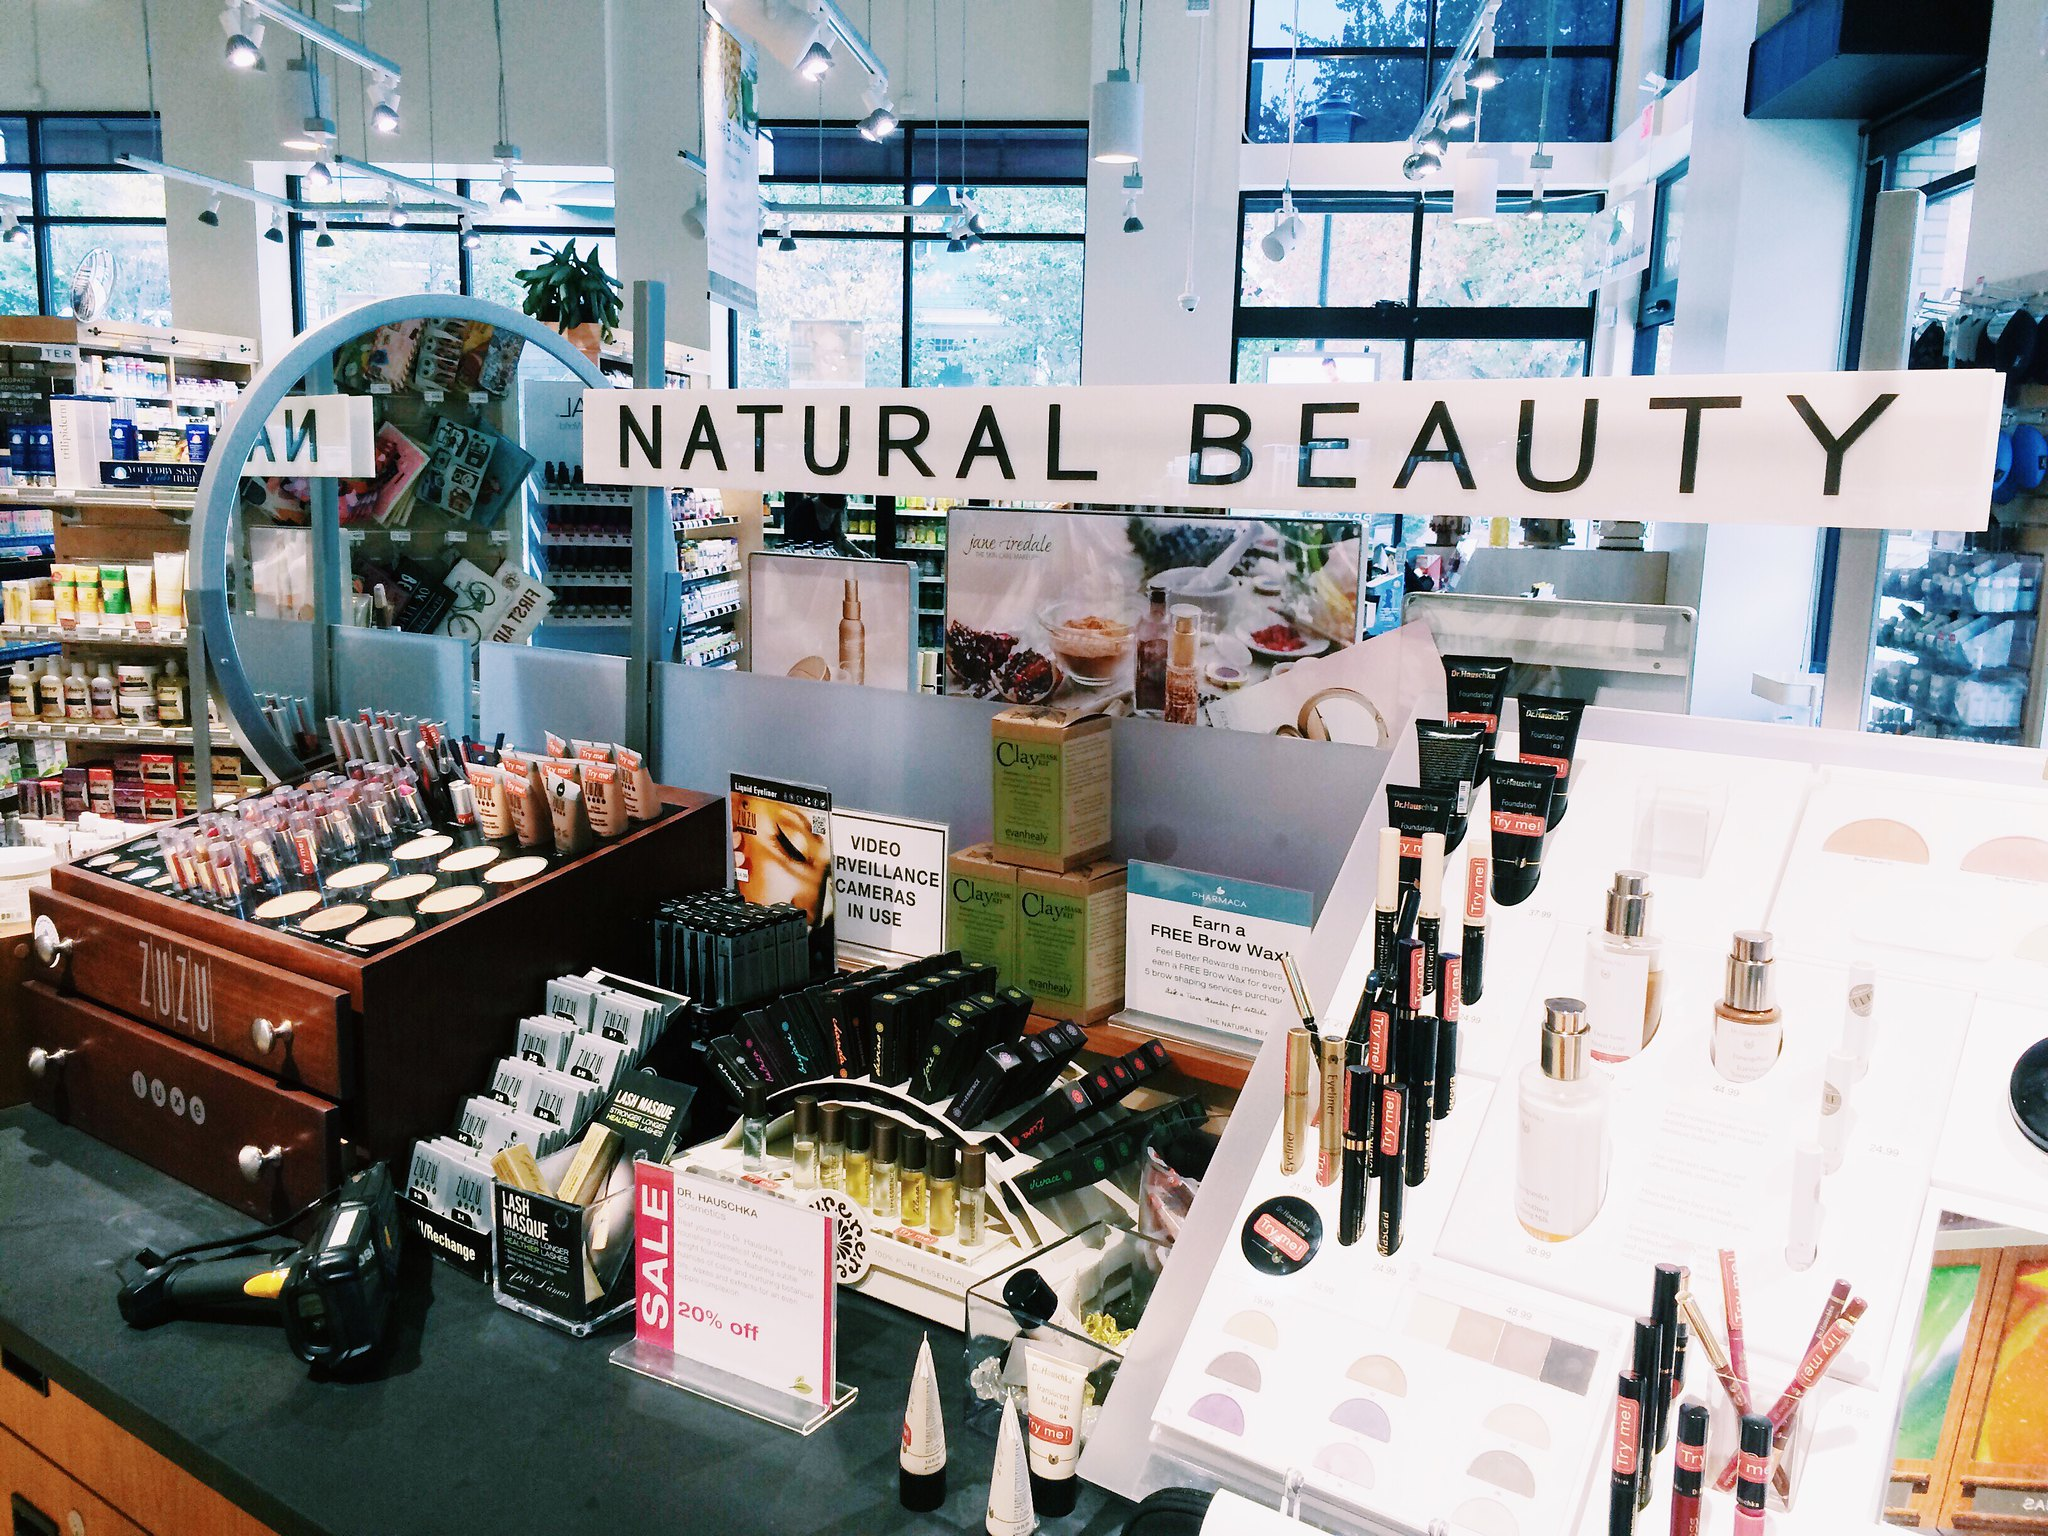 Pharmaca natural beauty